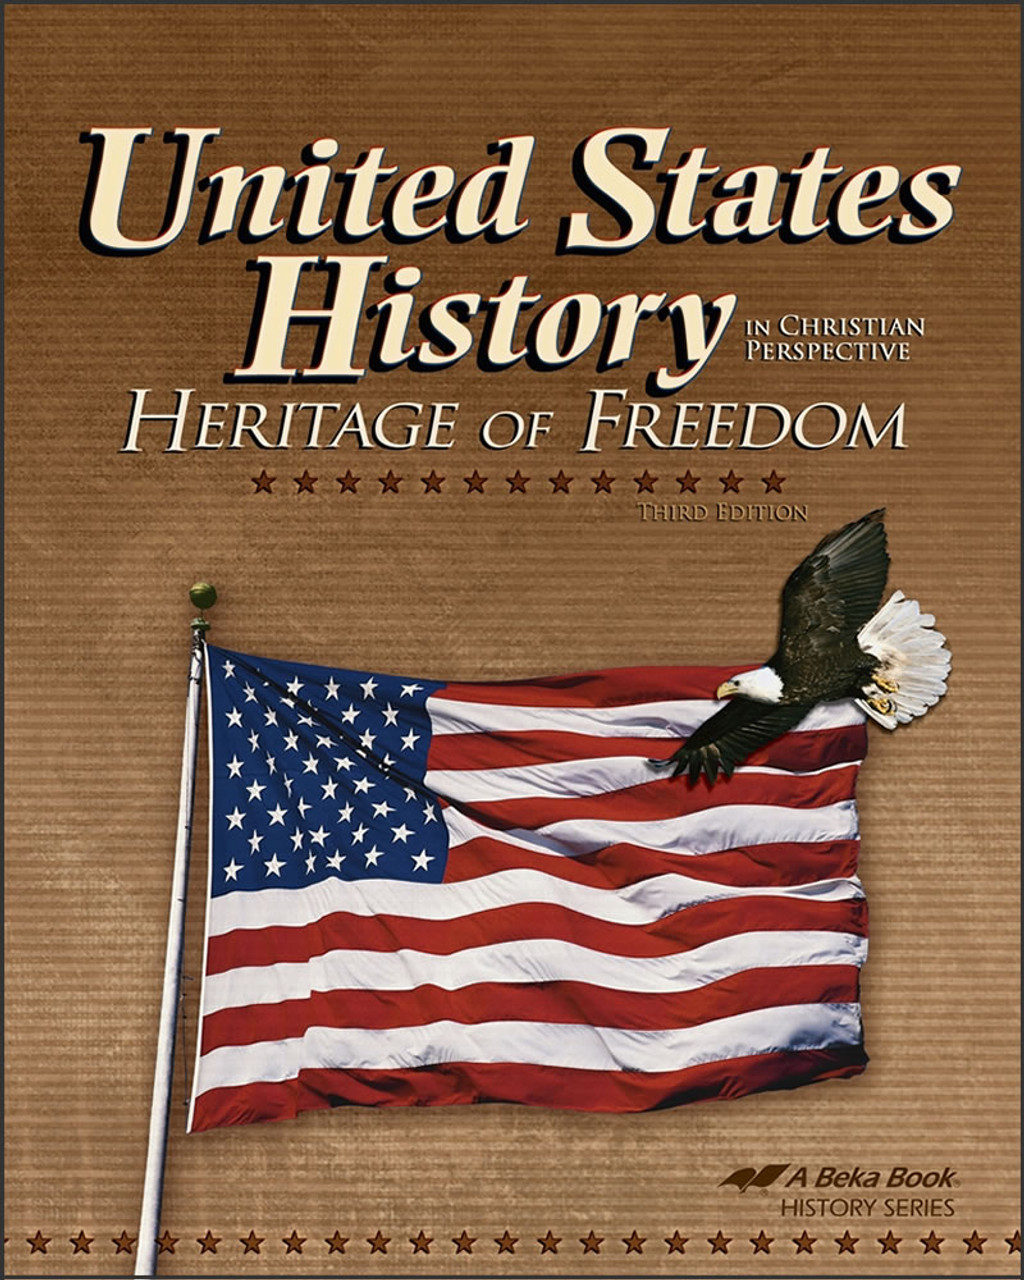 United States History: Heritage of Freedom, 3rd edition